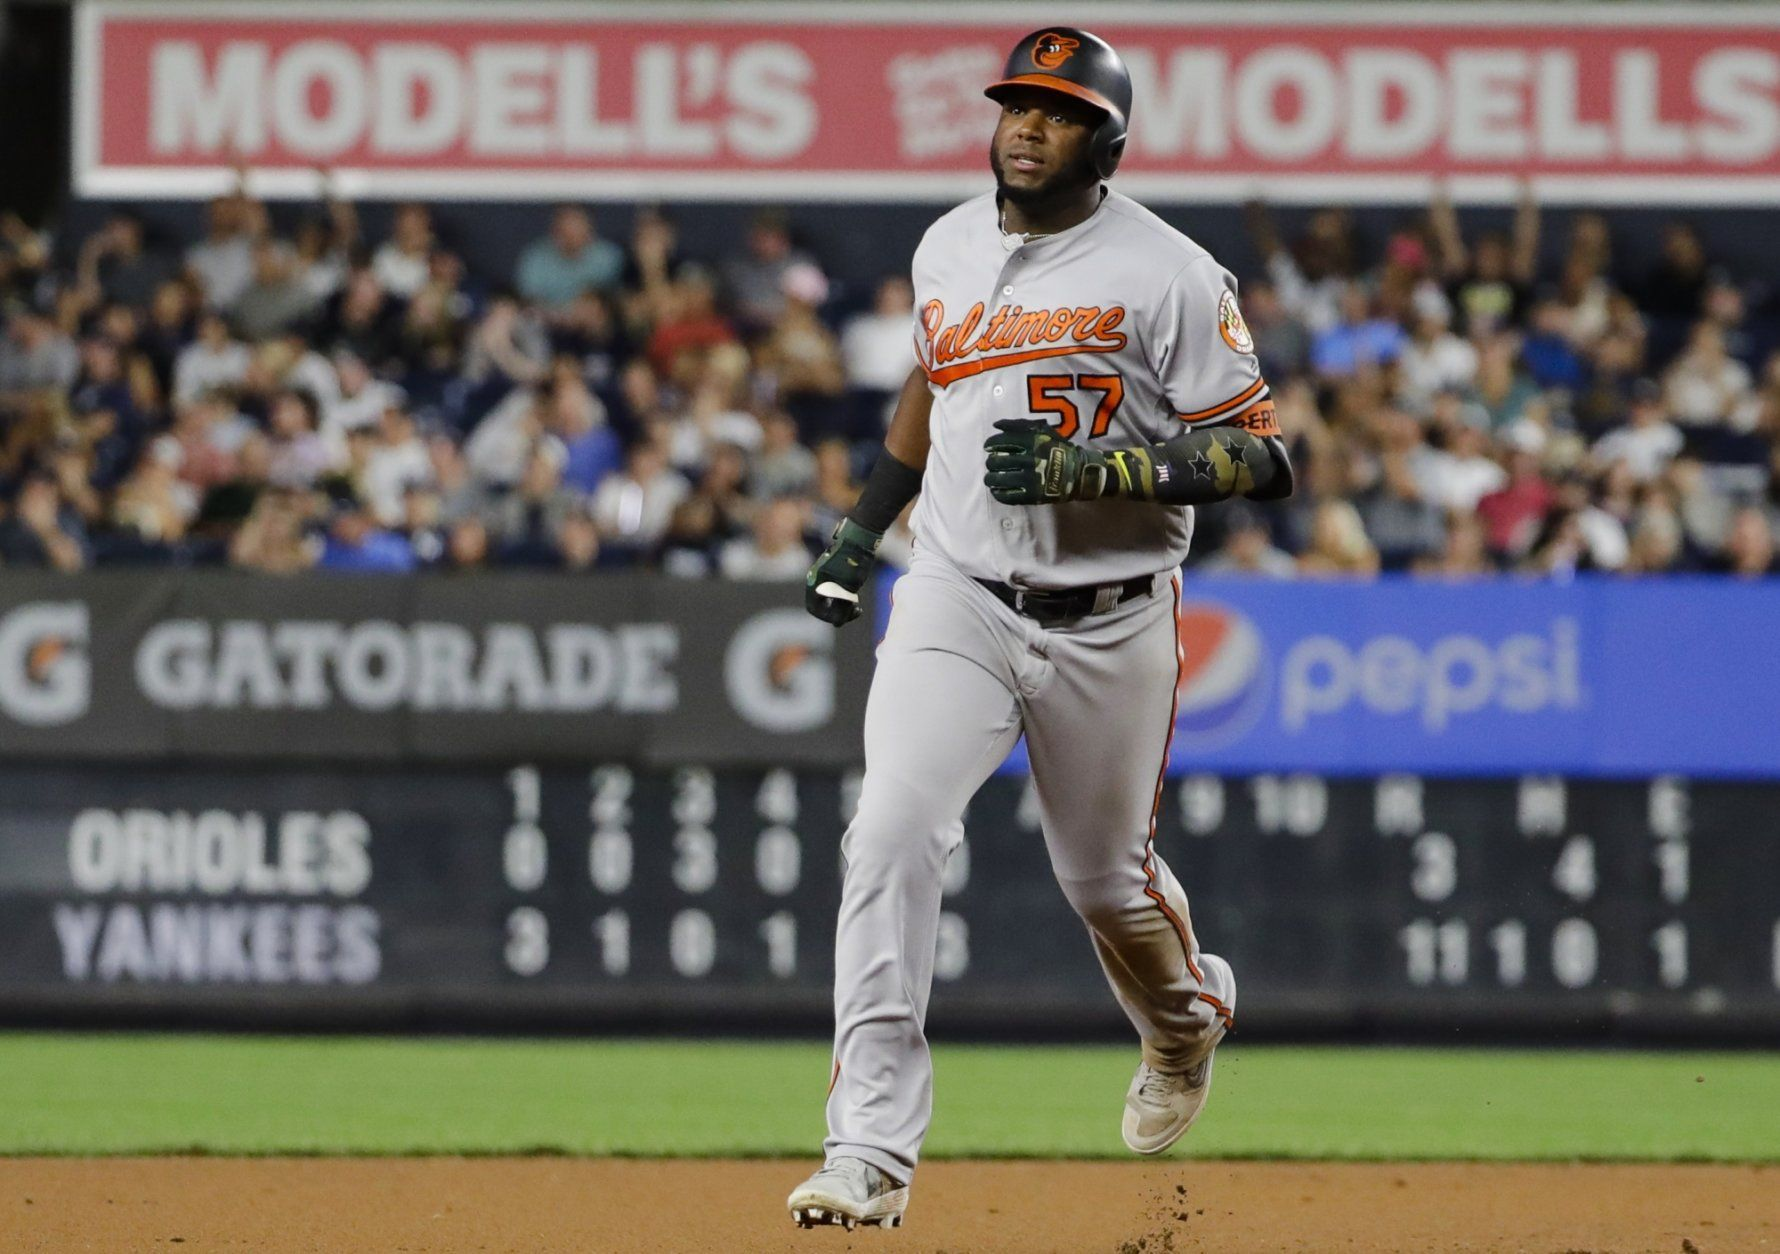 Baltimore Orioles' Hanser Alberto runs the bases after hitting a three-run home run during the seventh inning of the second game of a baseball doubleheader against the New York Yankees, Monday, Aug. 12, 2019, in New York. (AP Photo/Frank Franklin II)